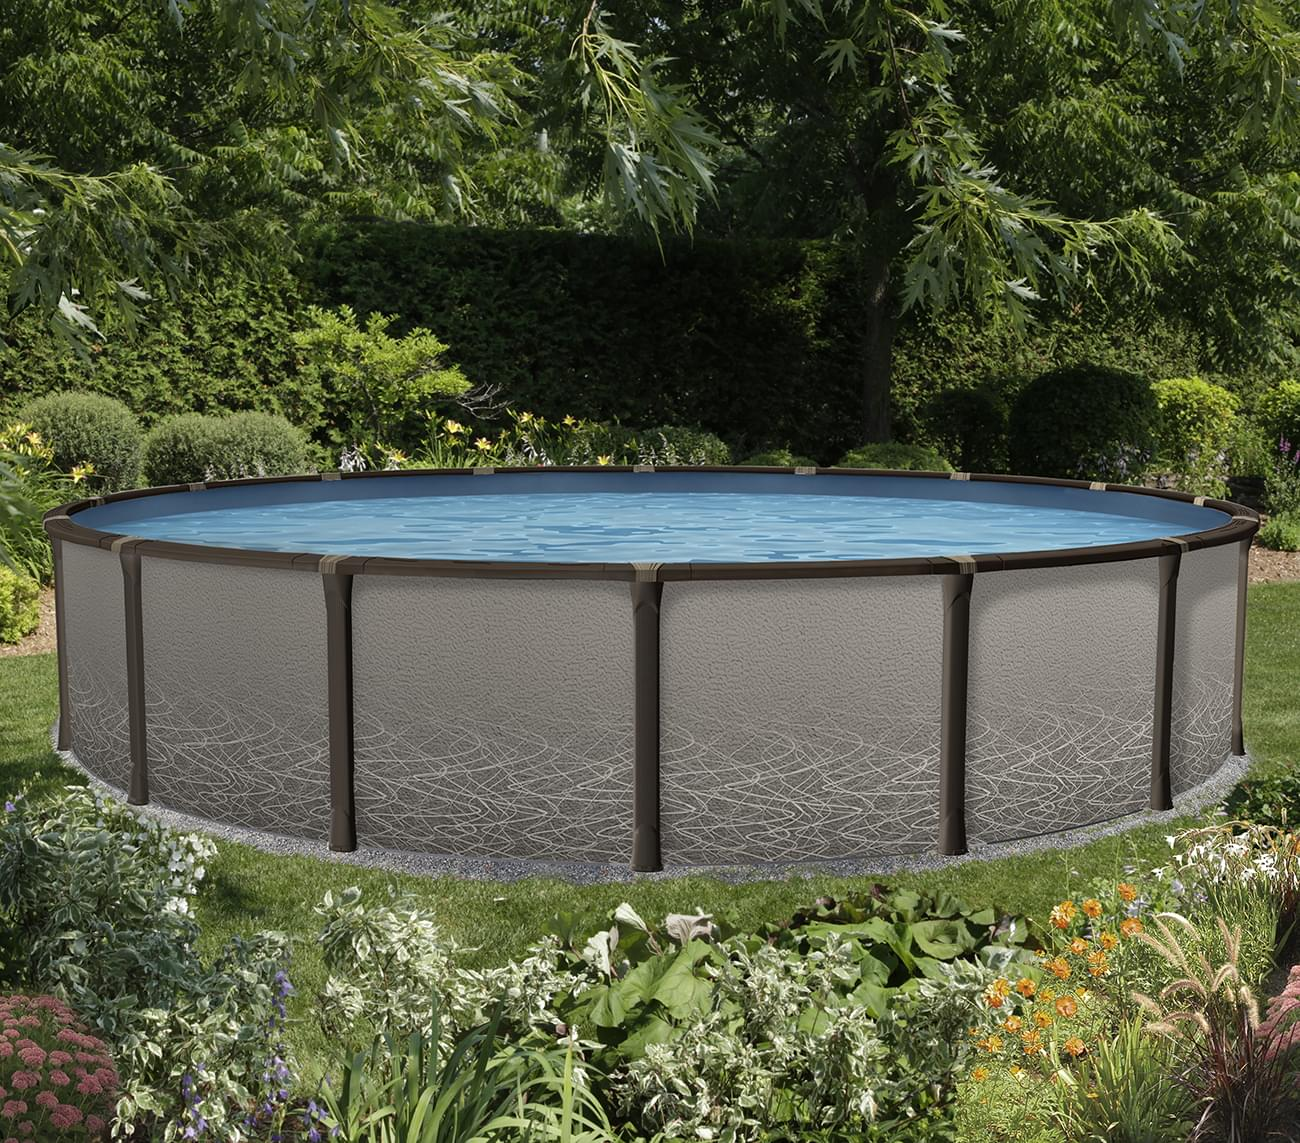 Element 27 round above ground pool pool supplies canada for Piscine hors terre design